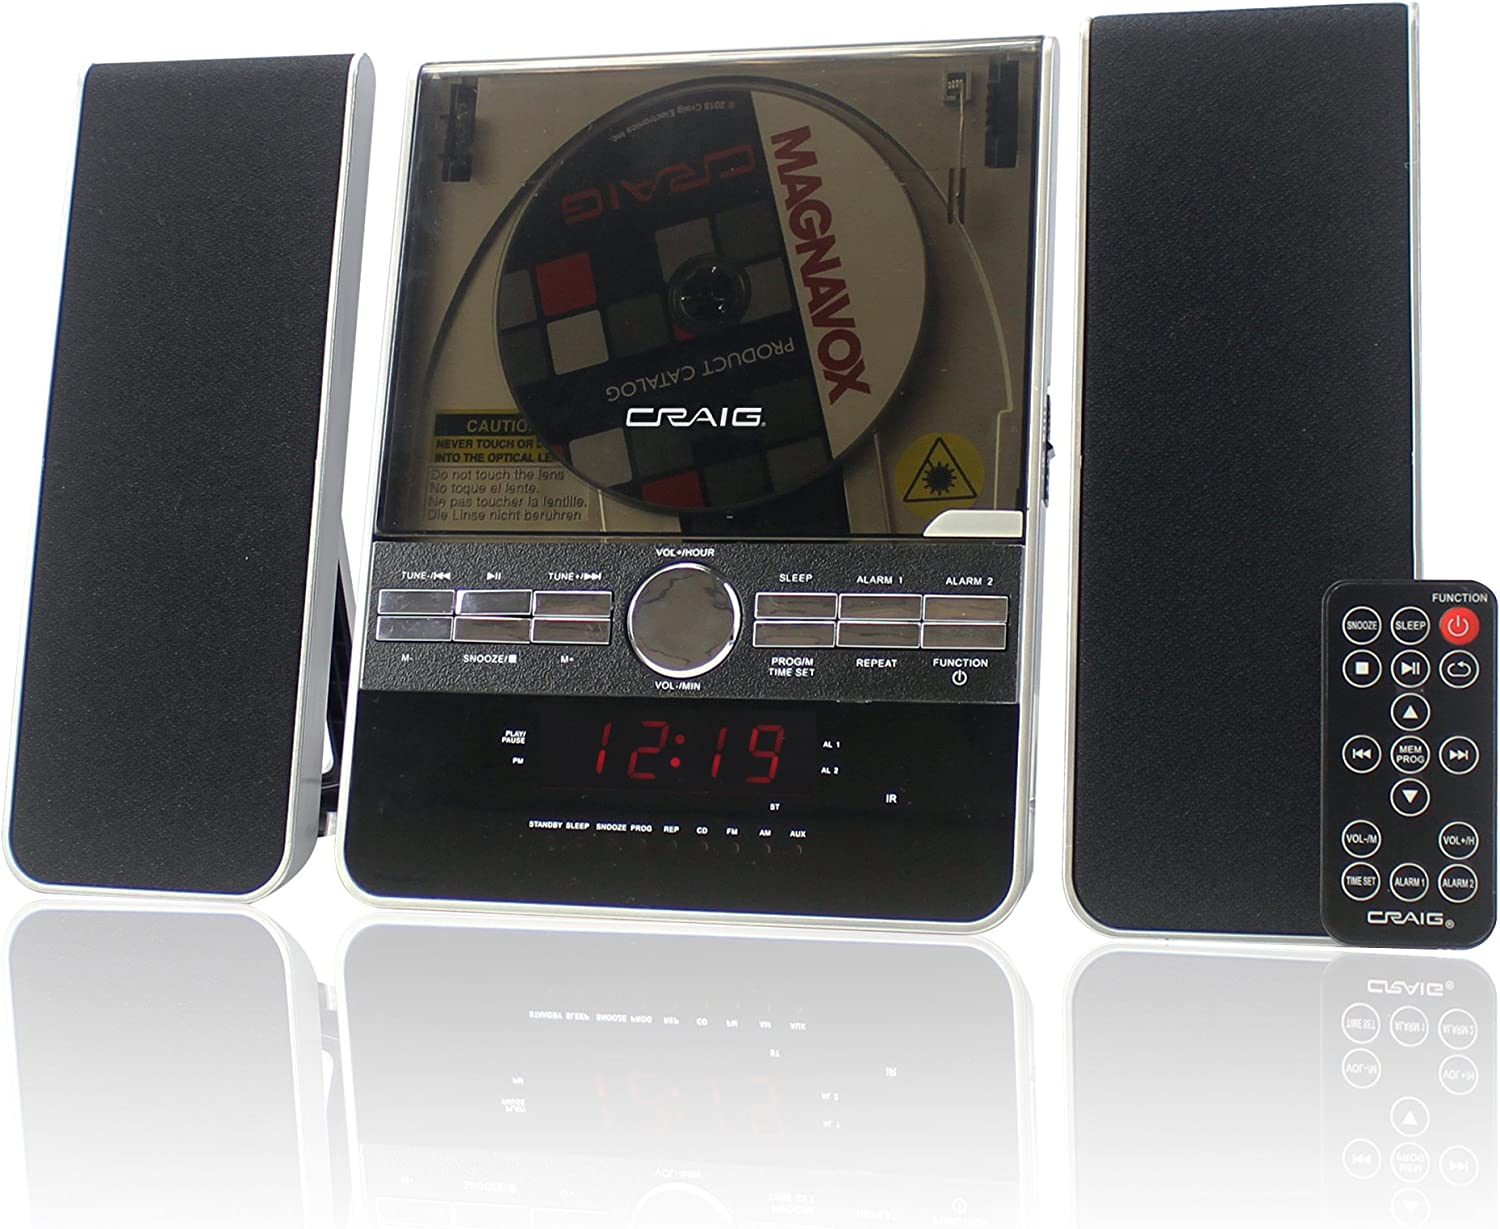 Craig Vertical CD Shelf System with AM/FM Stereo Radio and Dual Alarm Clock, 3-Piece Black (CM427)